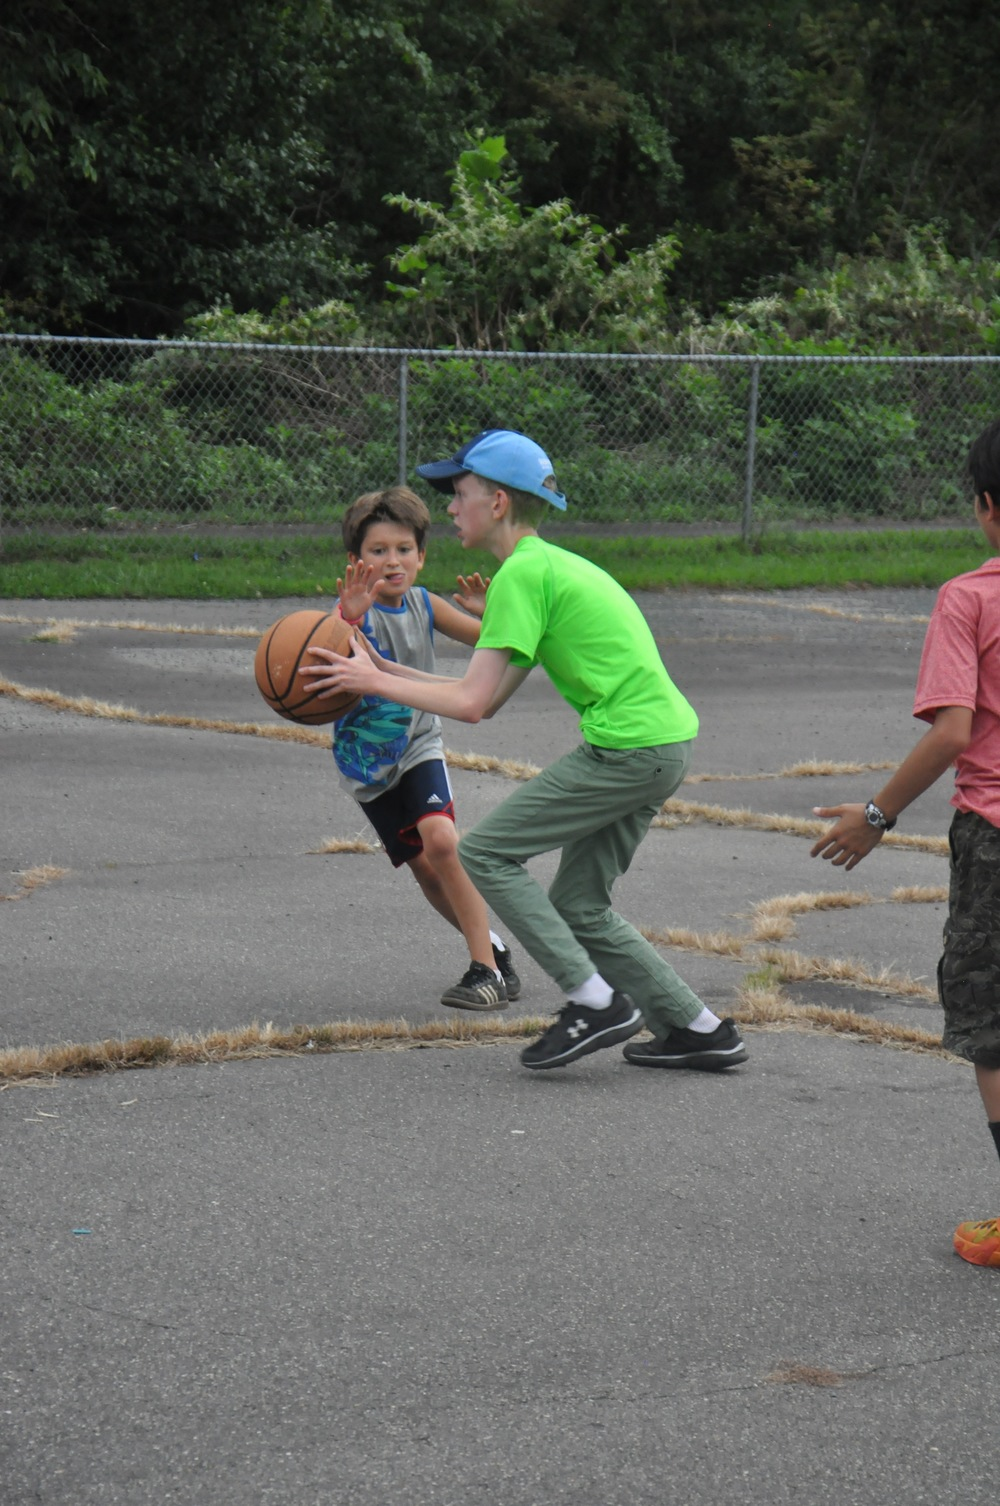 ben-and-julian-having-a-go-at-basketball-in-bakersville.jpg